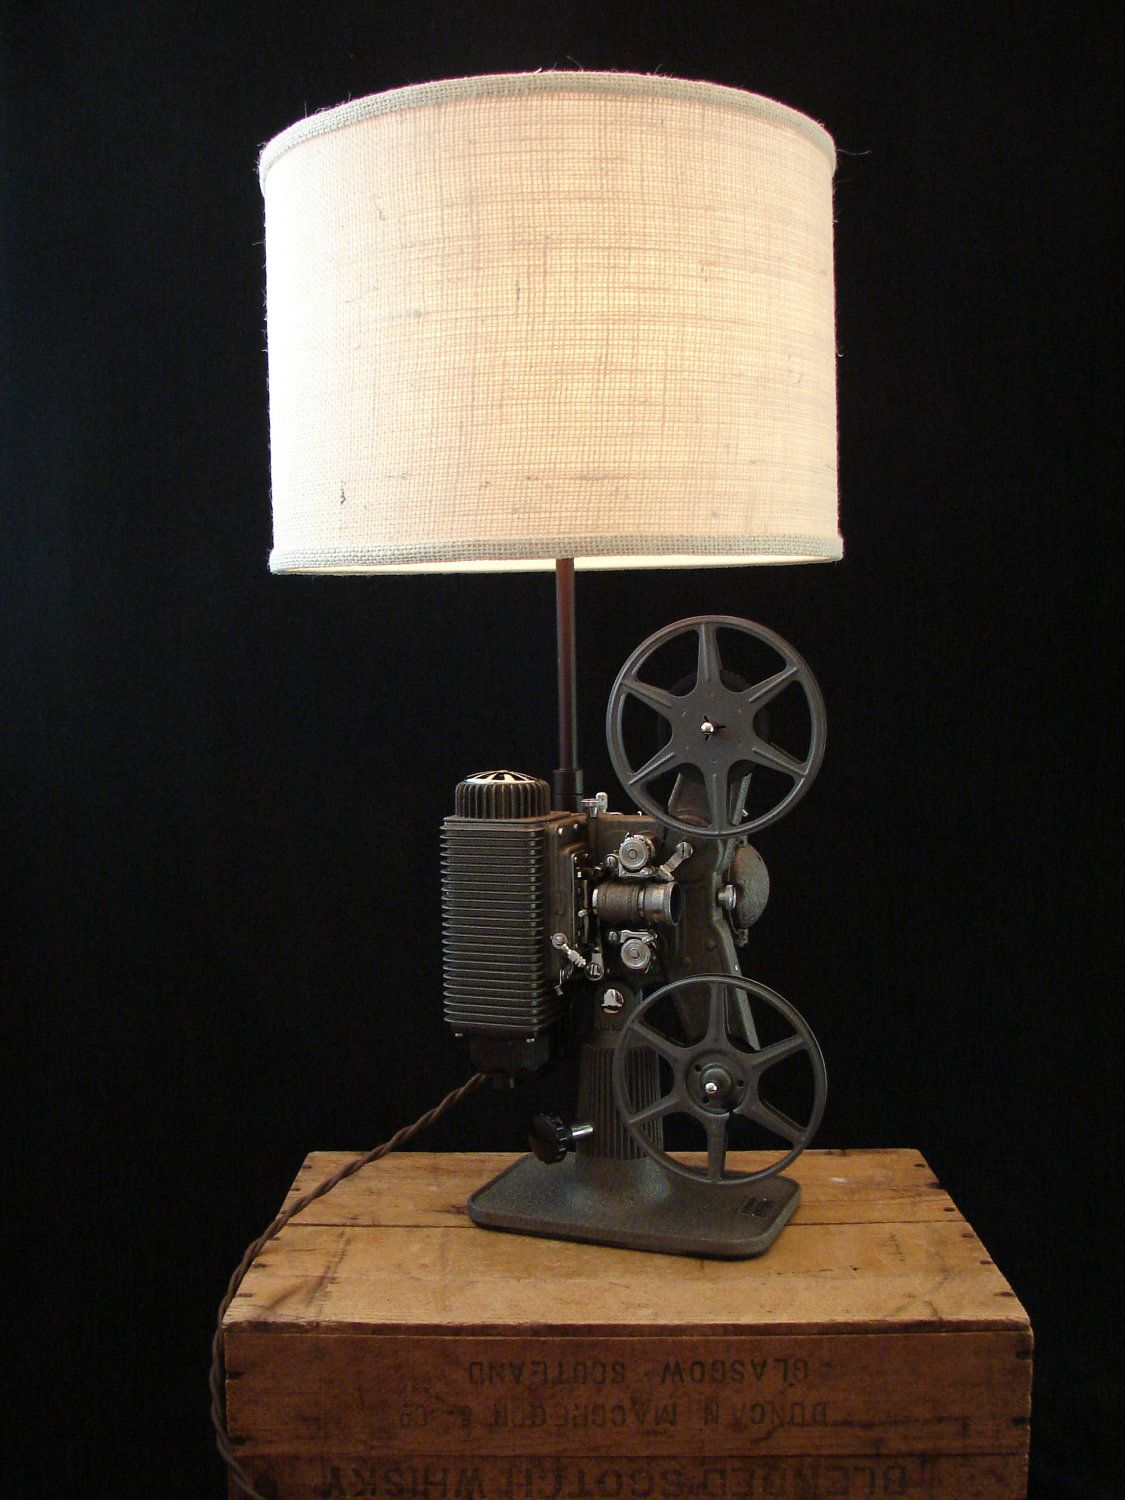 Upcycled Vintage Revere 8mm Projector Lamp | kule schtuff